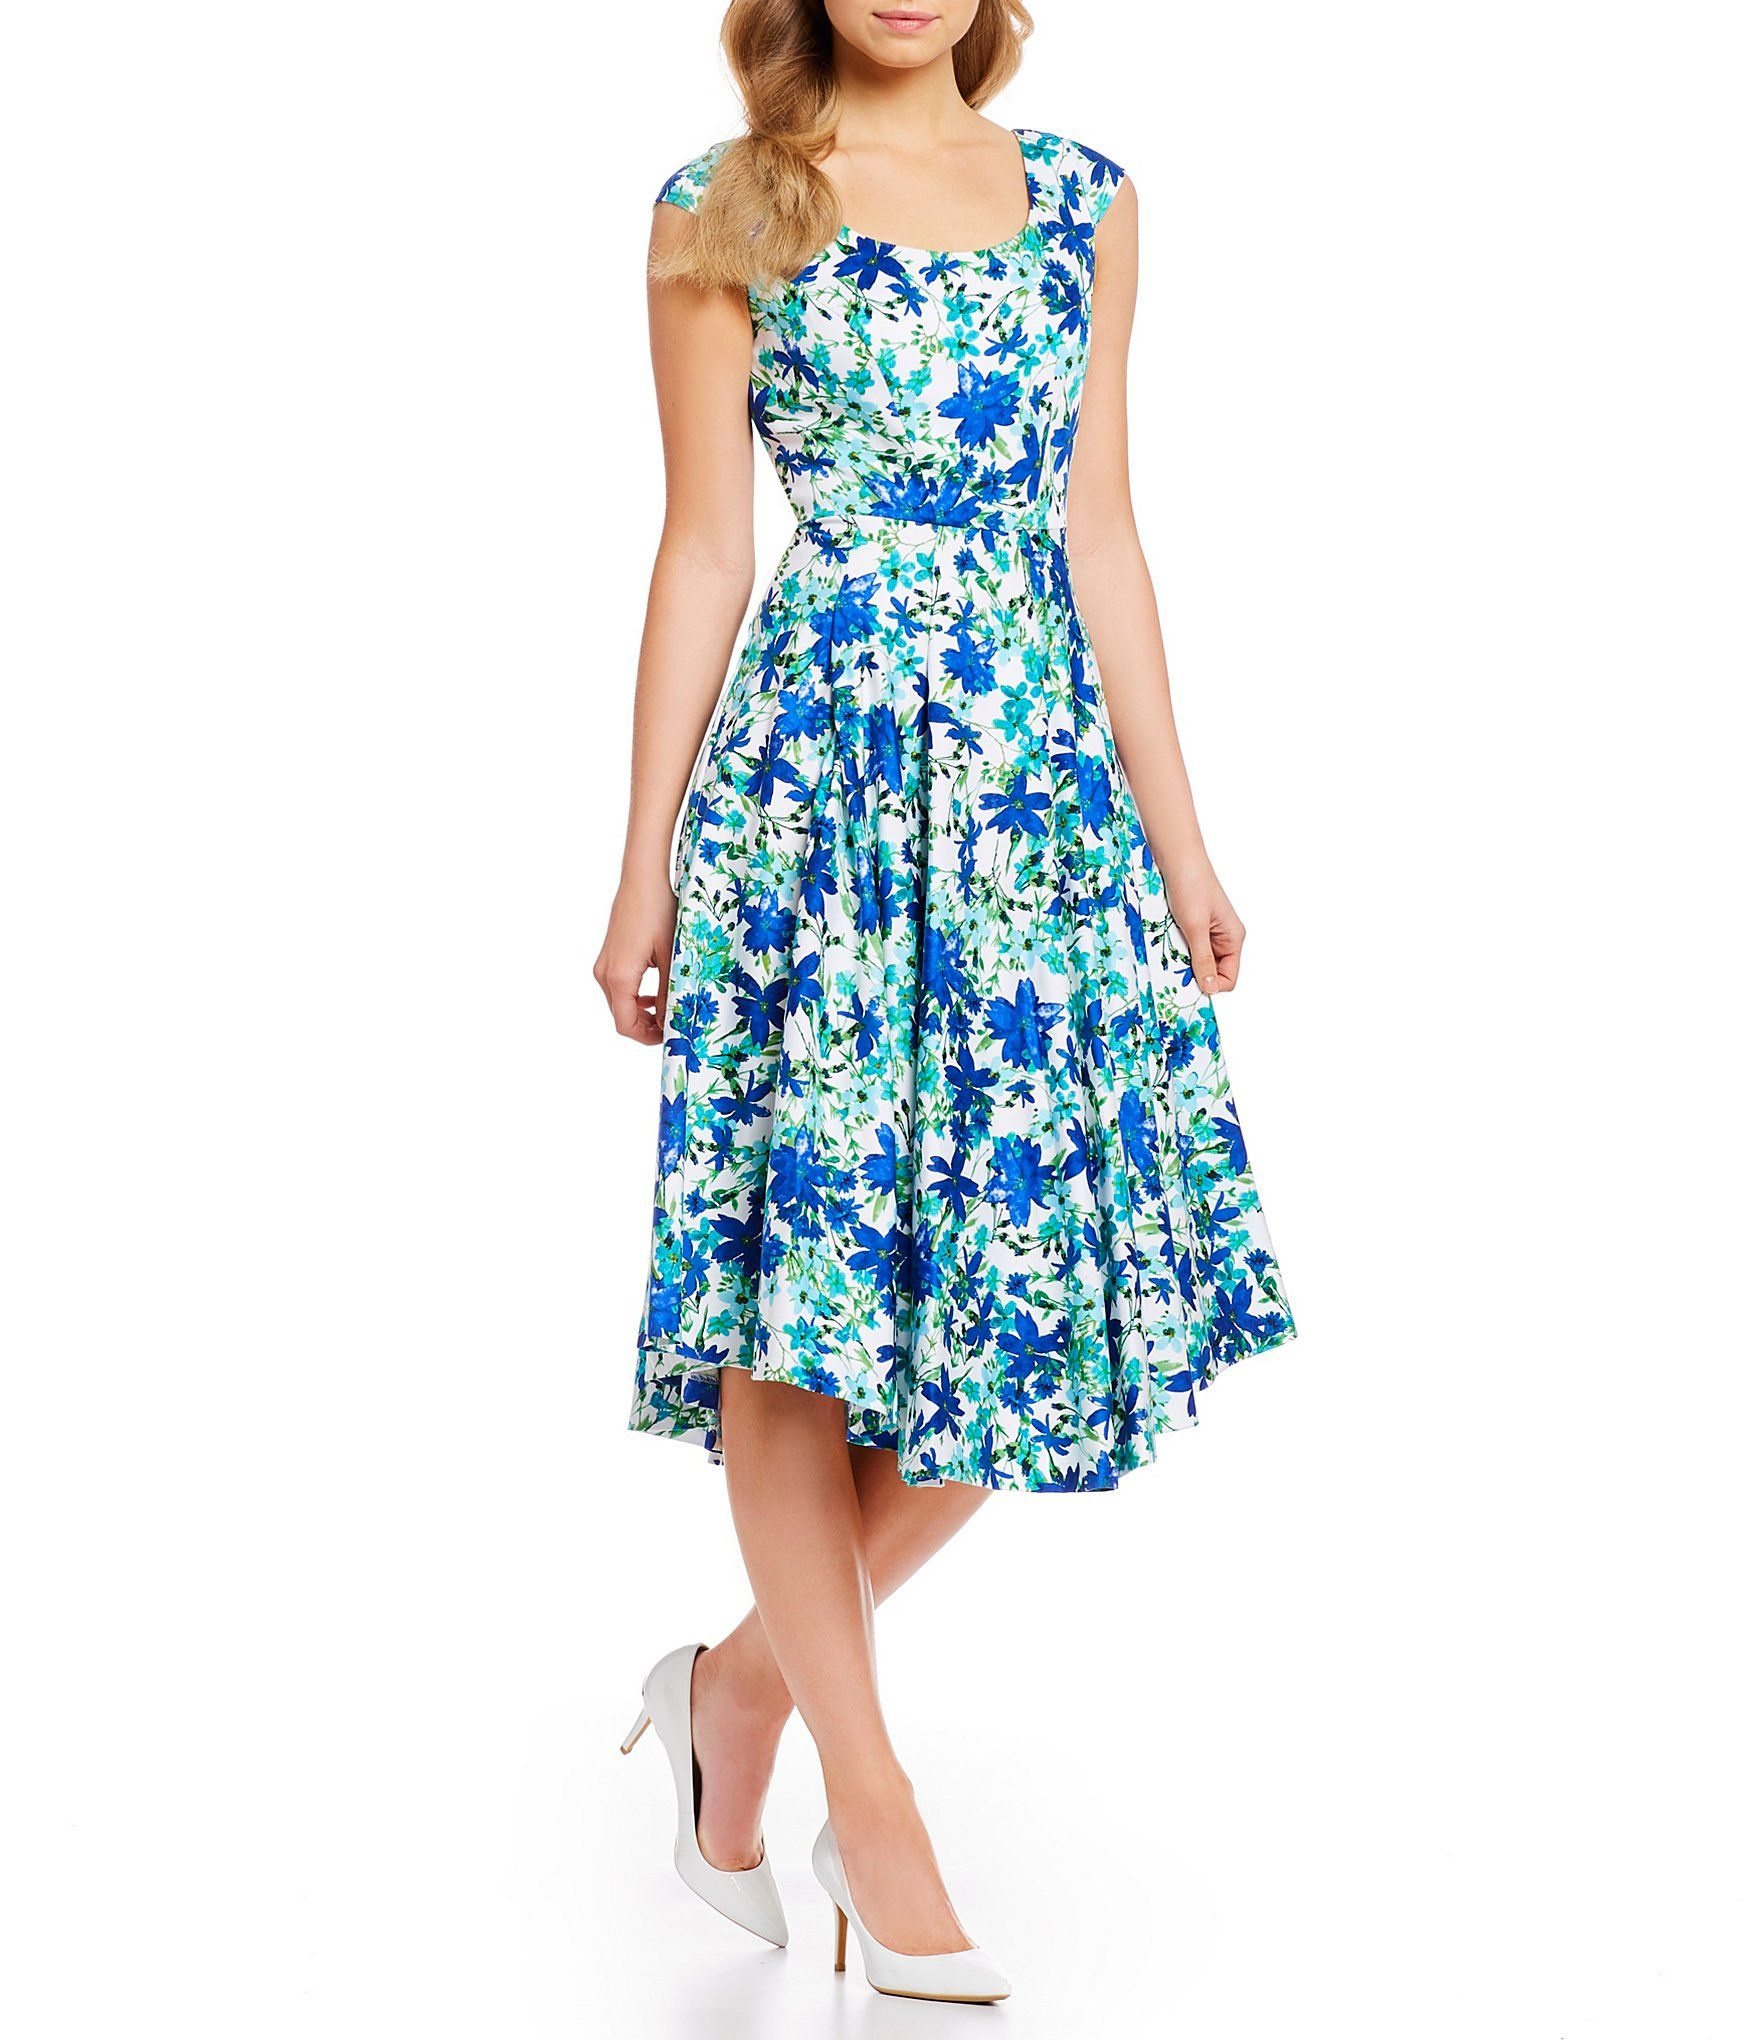 56059d6762e1 Shop for Calvin Klein Floral Print Cap Sleeve Fit and Flare Midi Dress at  Dillards. Visit